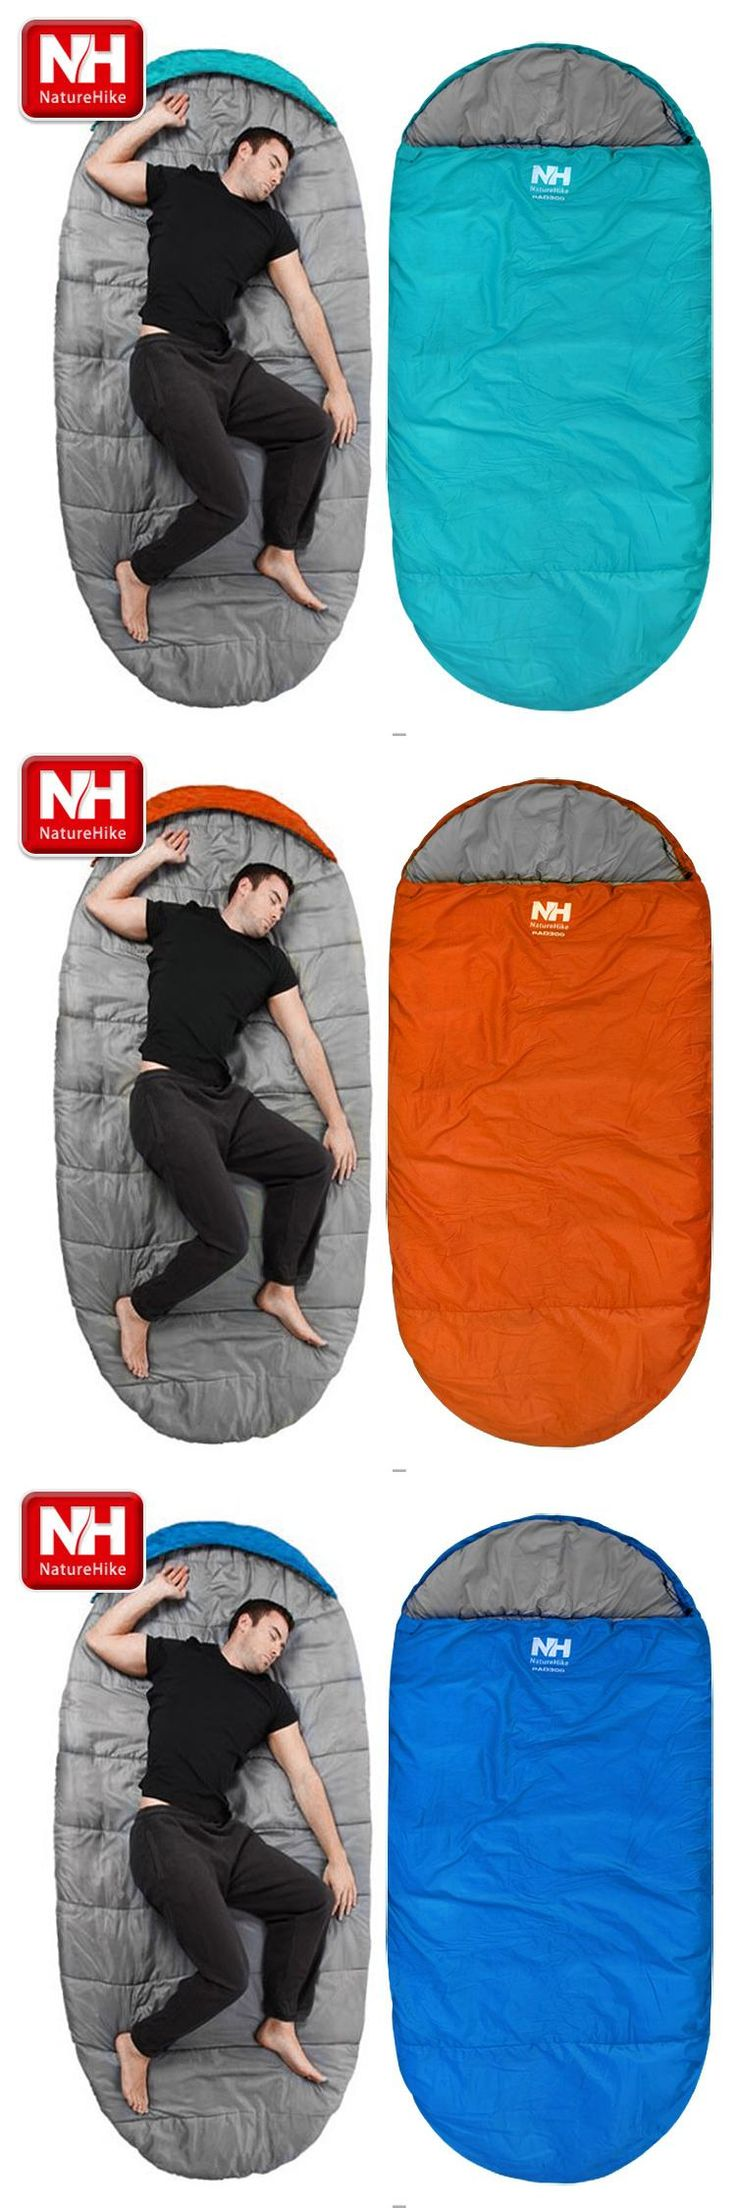 [Visit to Buy] Naturehike Free Shipping Sleeping Bag Outdoor Sleeping bag Camping Sleeping Bag NH80S002-D #Advertisement